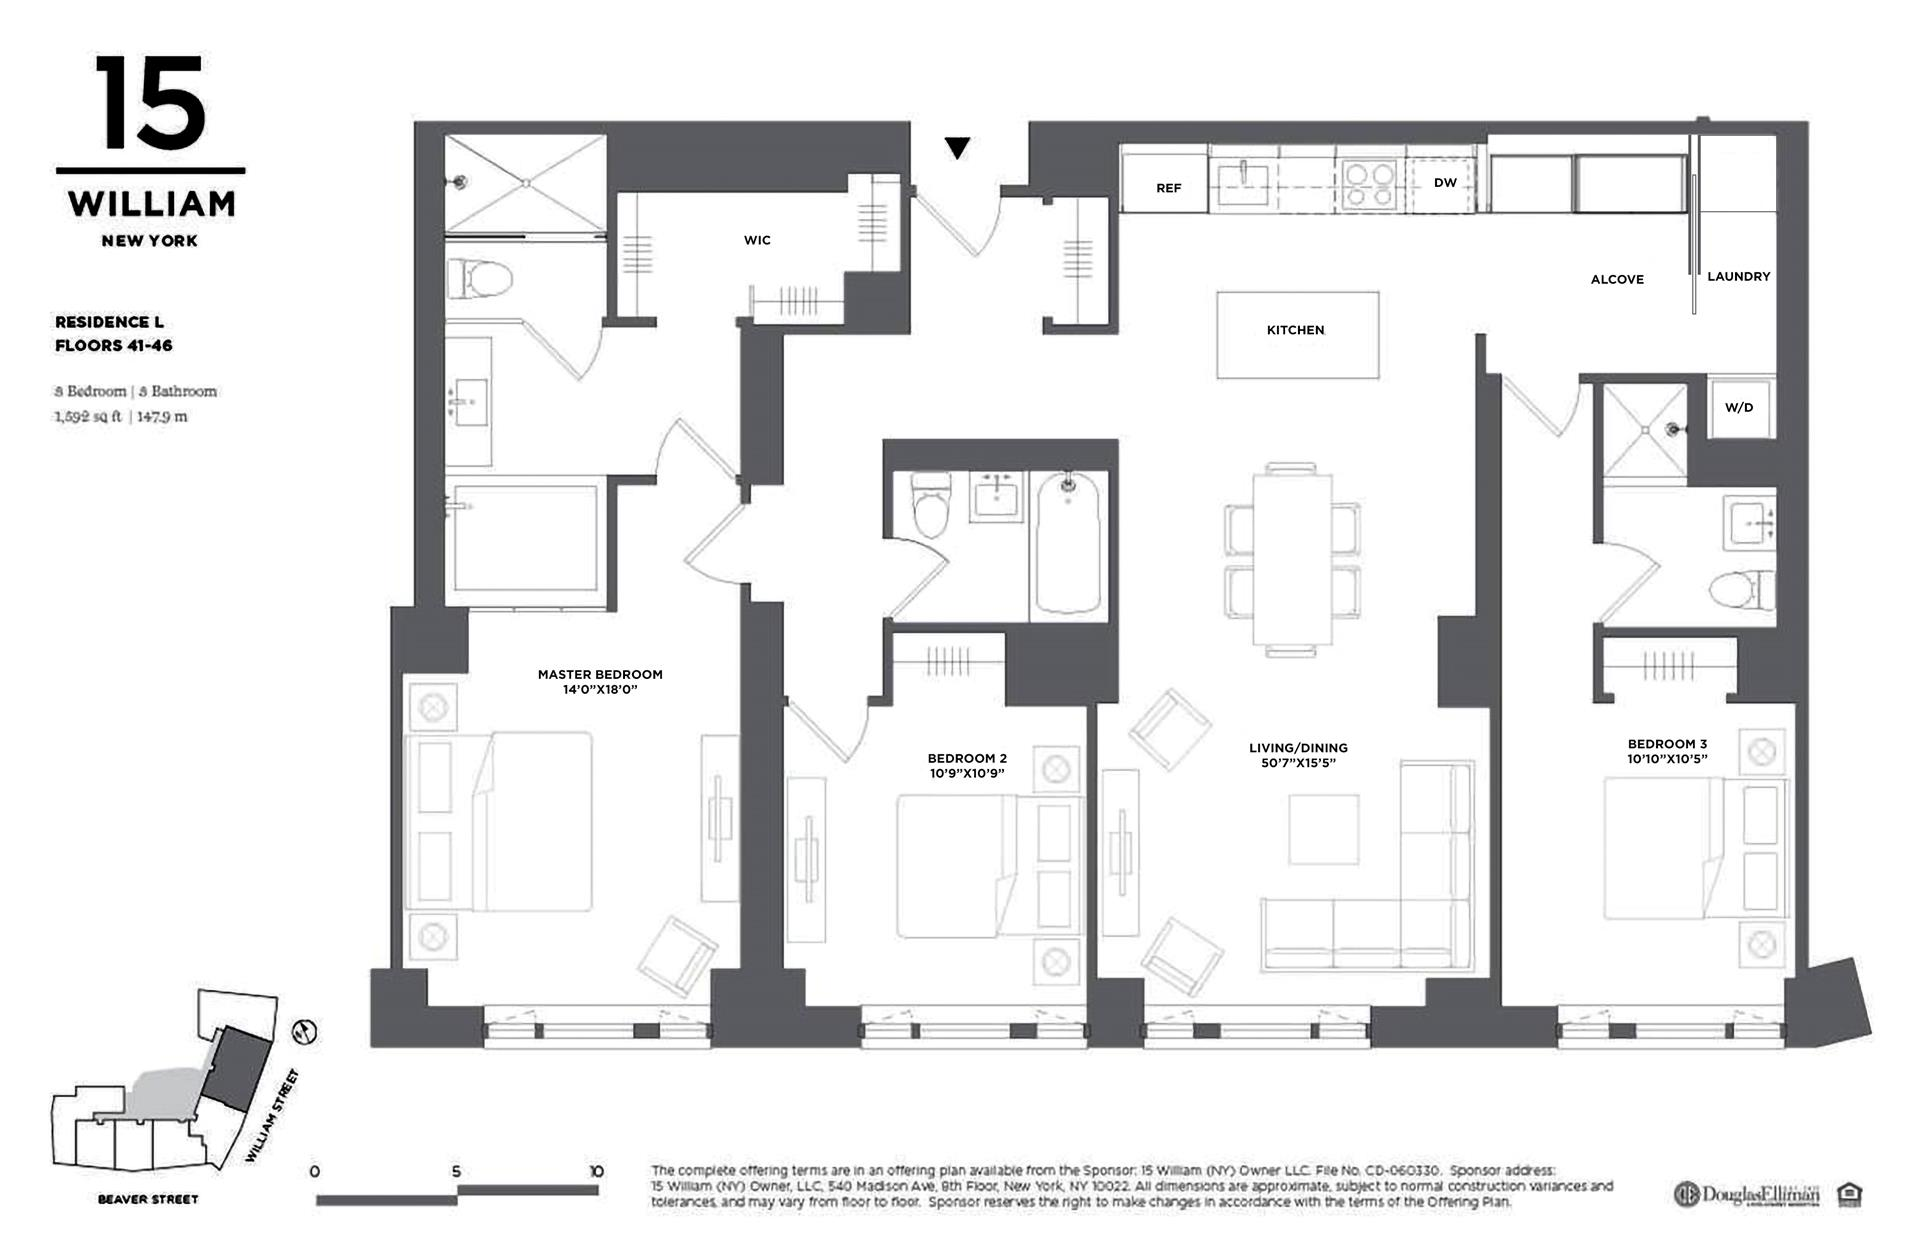 Floor plan of 15 William, 15 William St, 41L - Financial District, New York